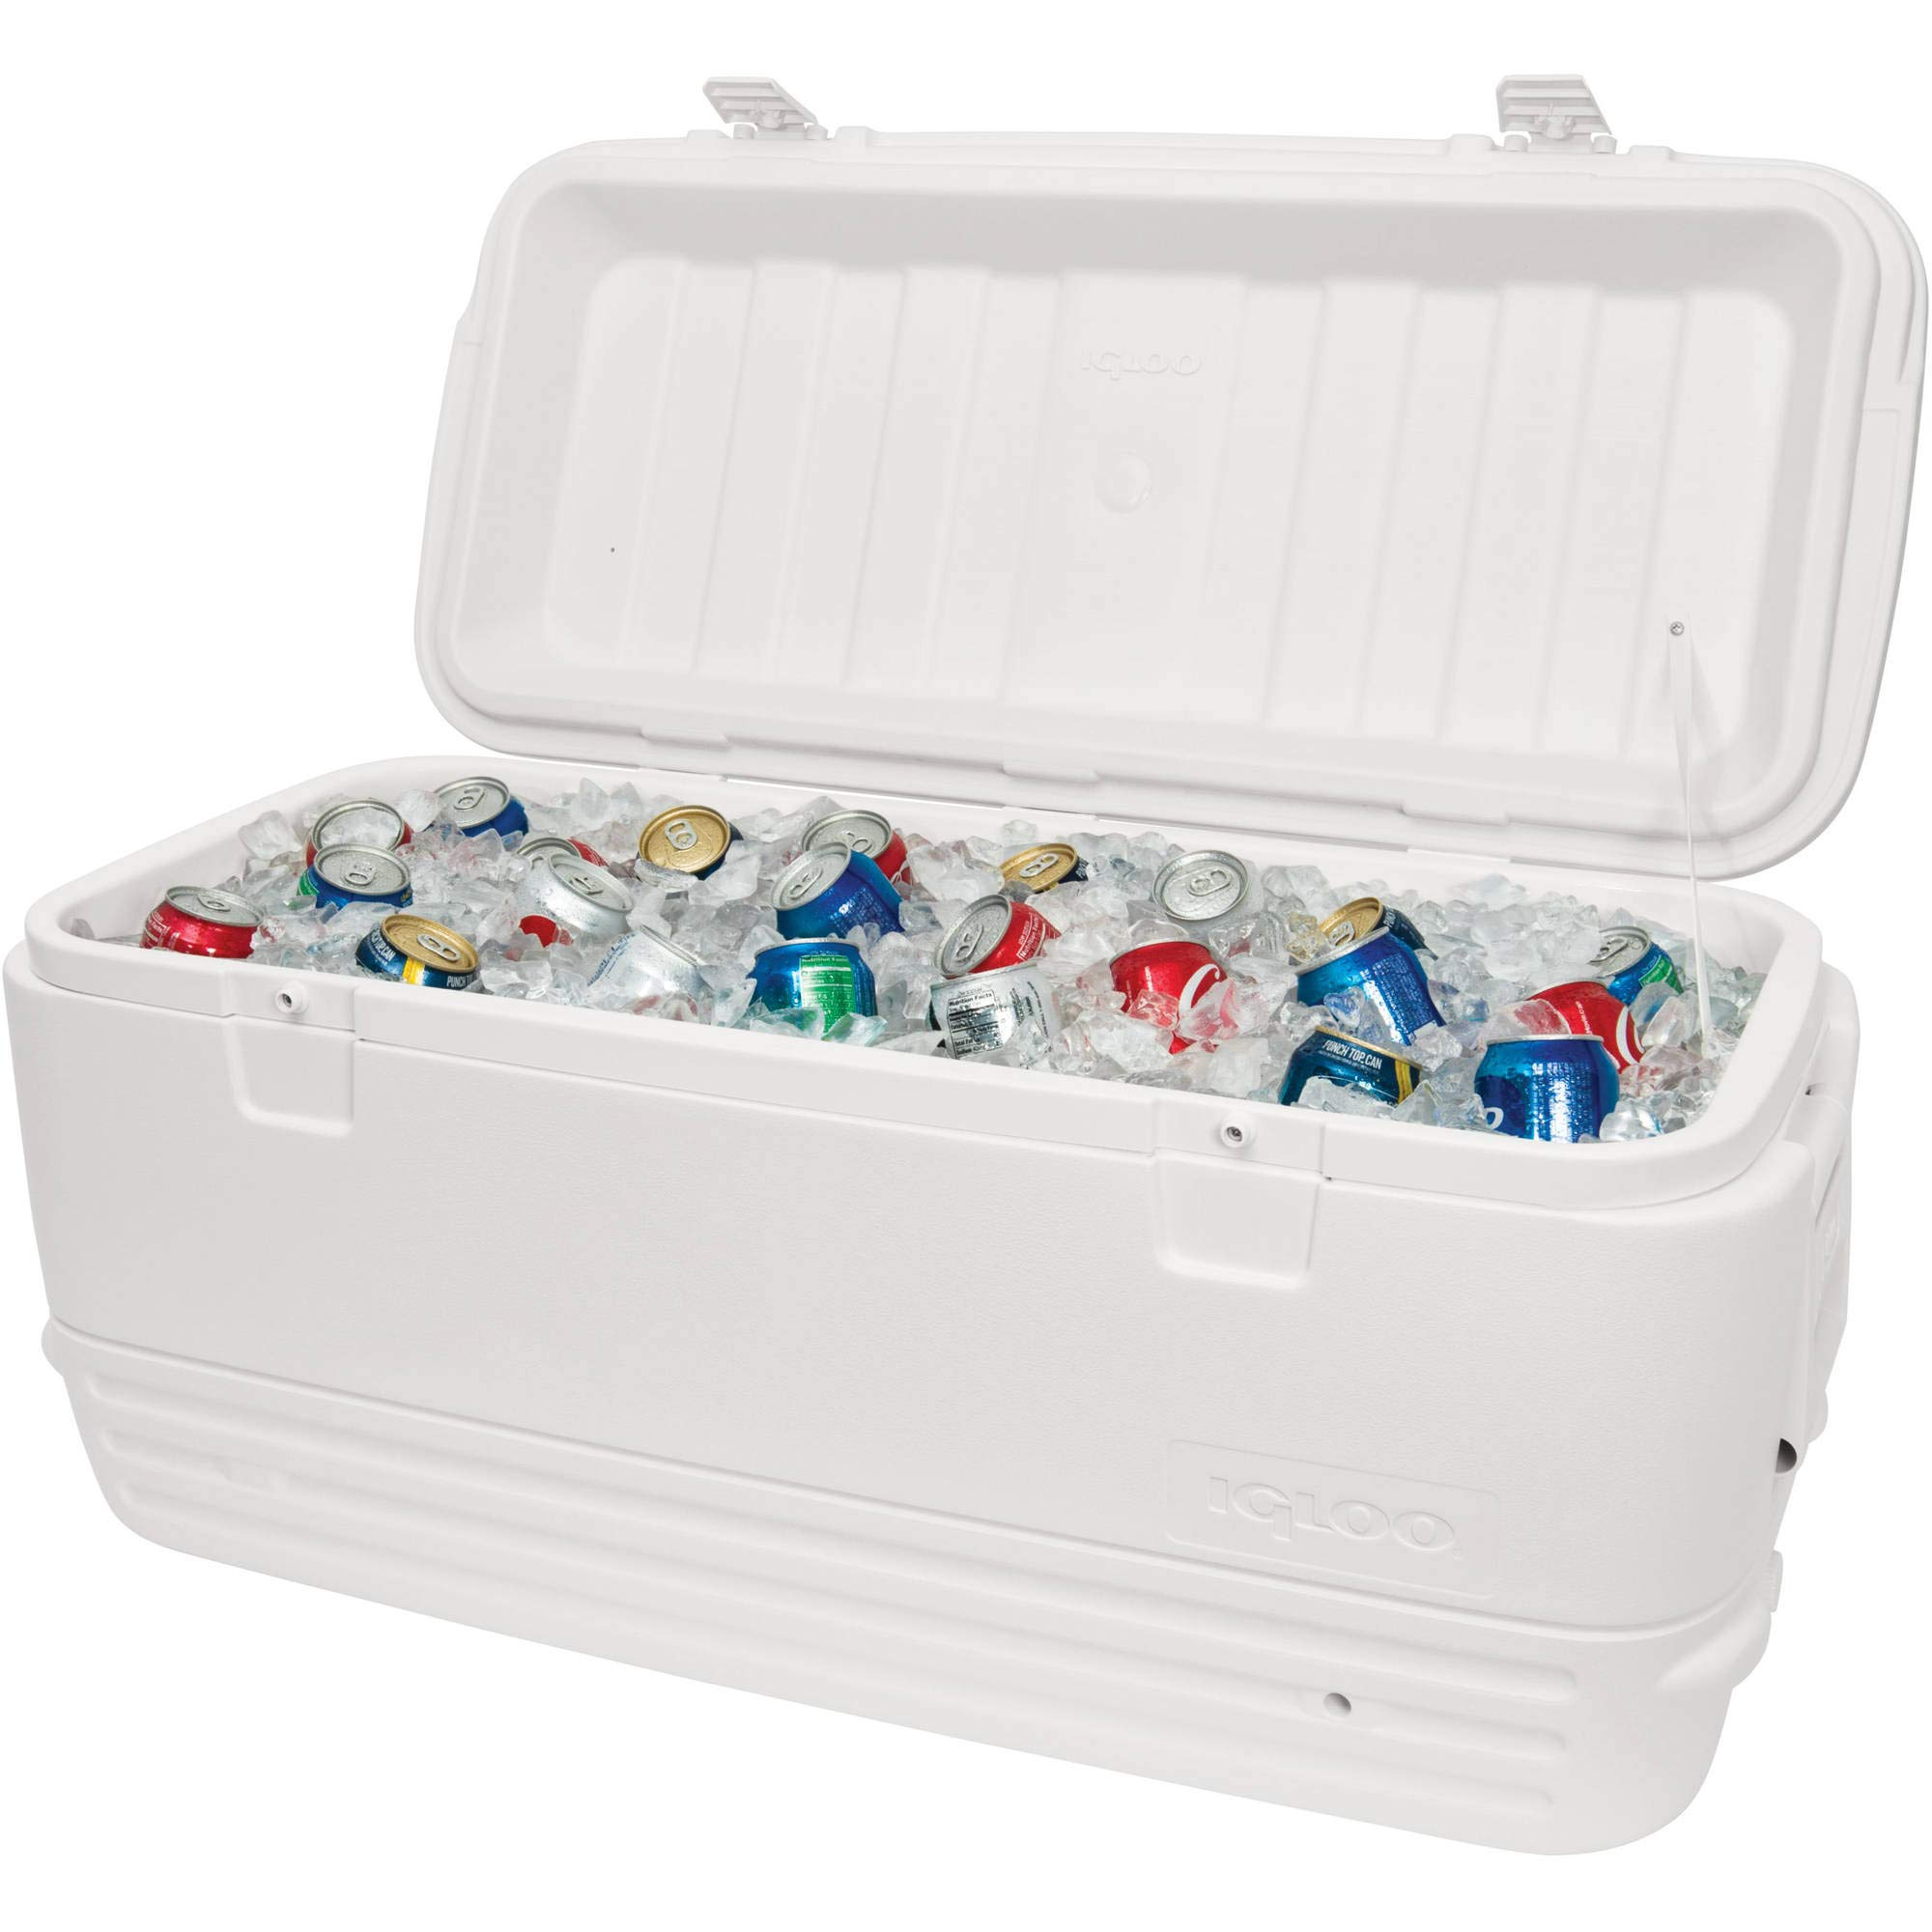 Igloo 120-Qt Polar Cooler (1 Pack) by Igloo